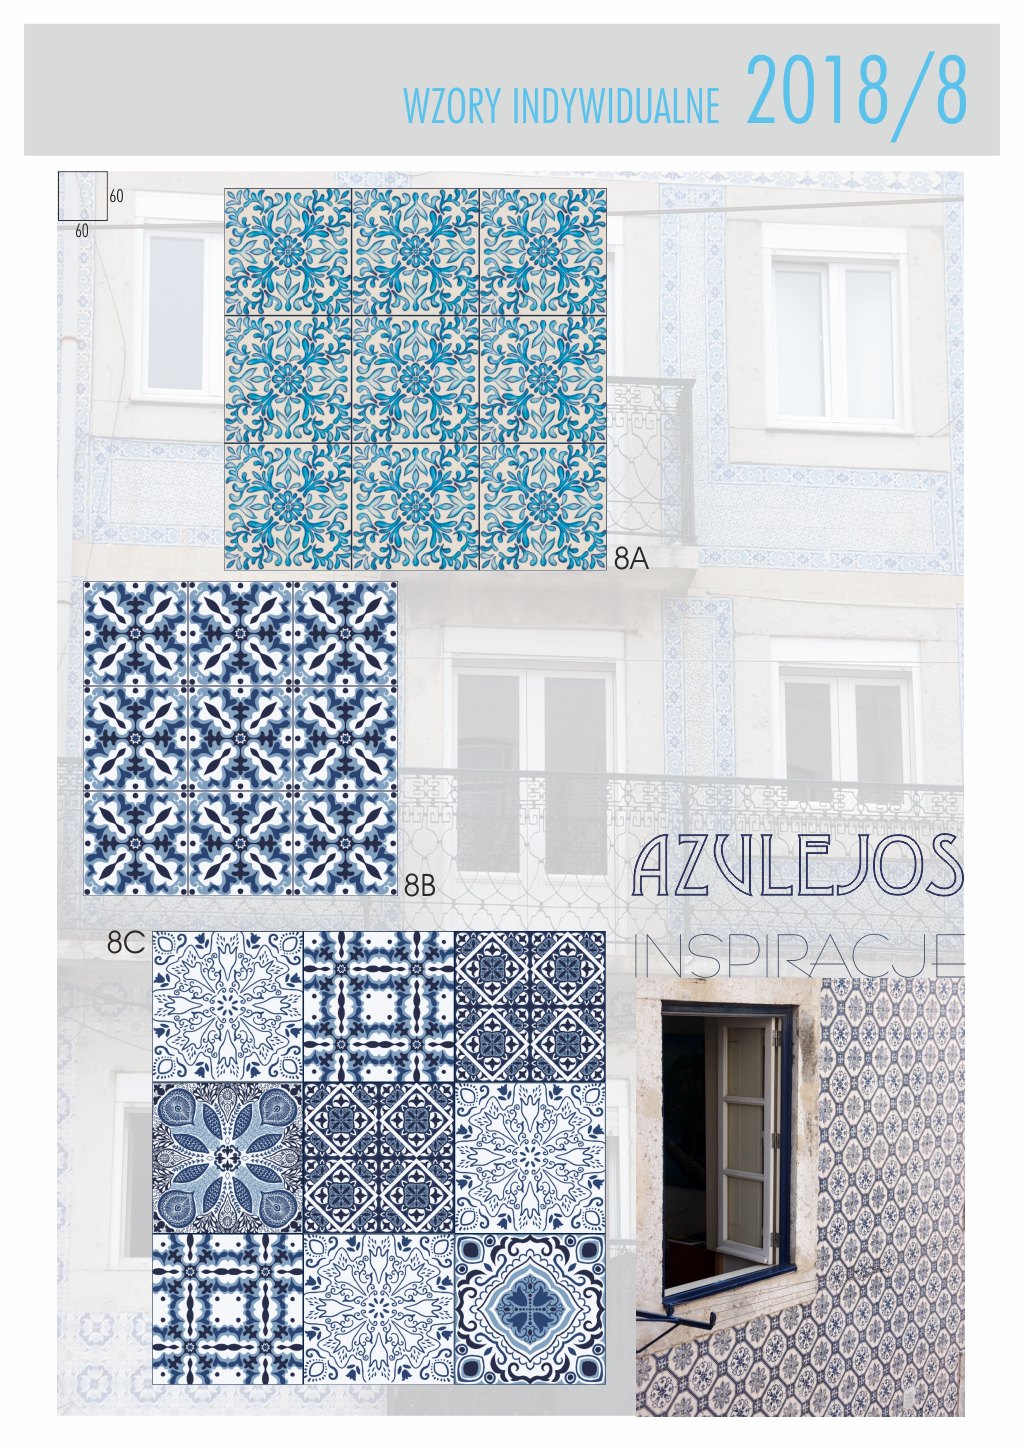 2018 8 azulejos 1png